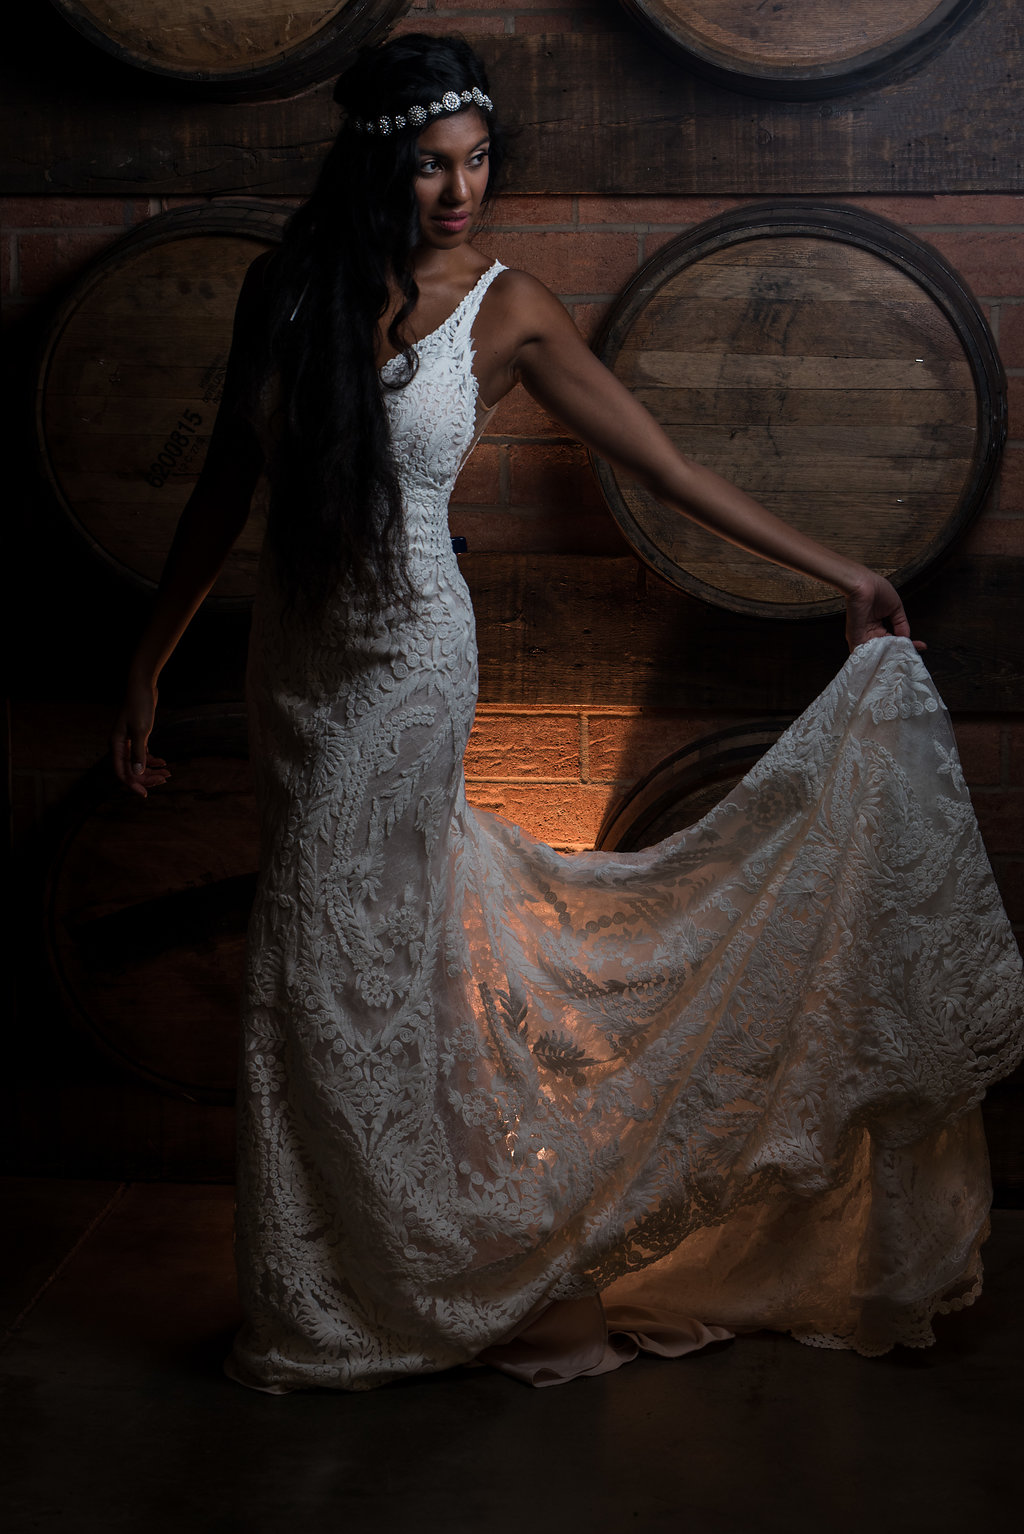 Dramatic Bridal Portrait,part of a Boho Brewery Wedding Styled Shoot at Triple C Barrel Room in Charlotte NC. Dress and Accessories by Paige and Elliot.